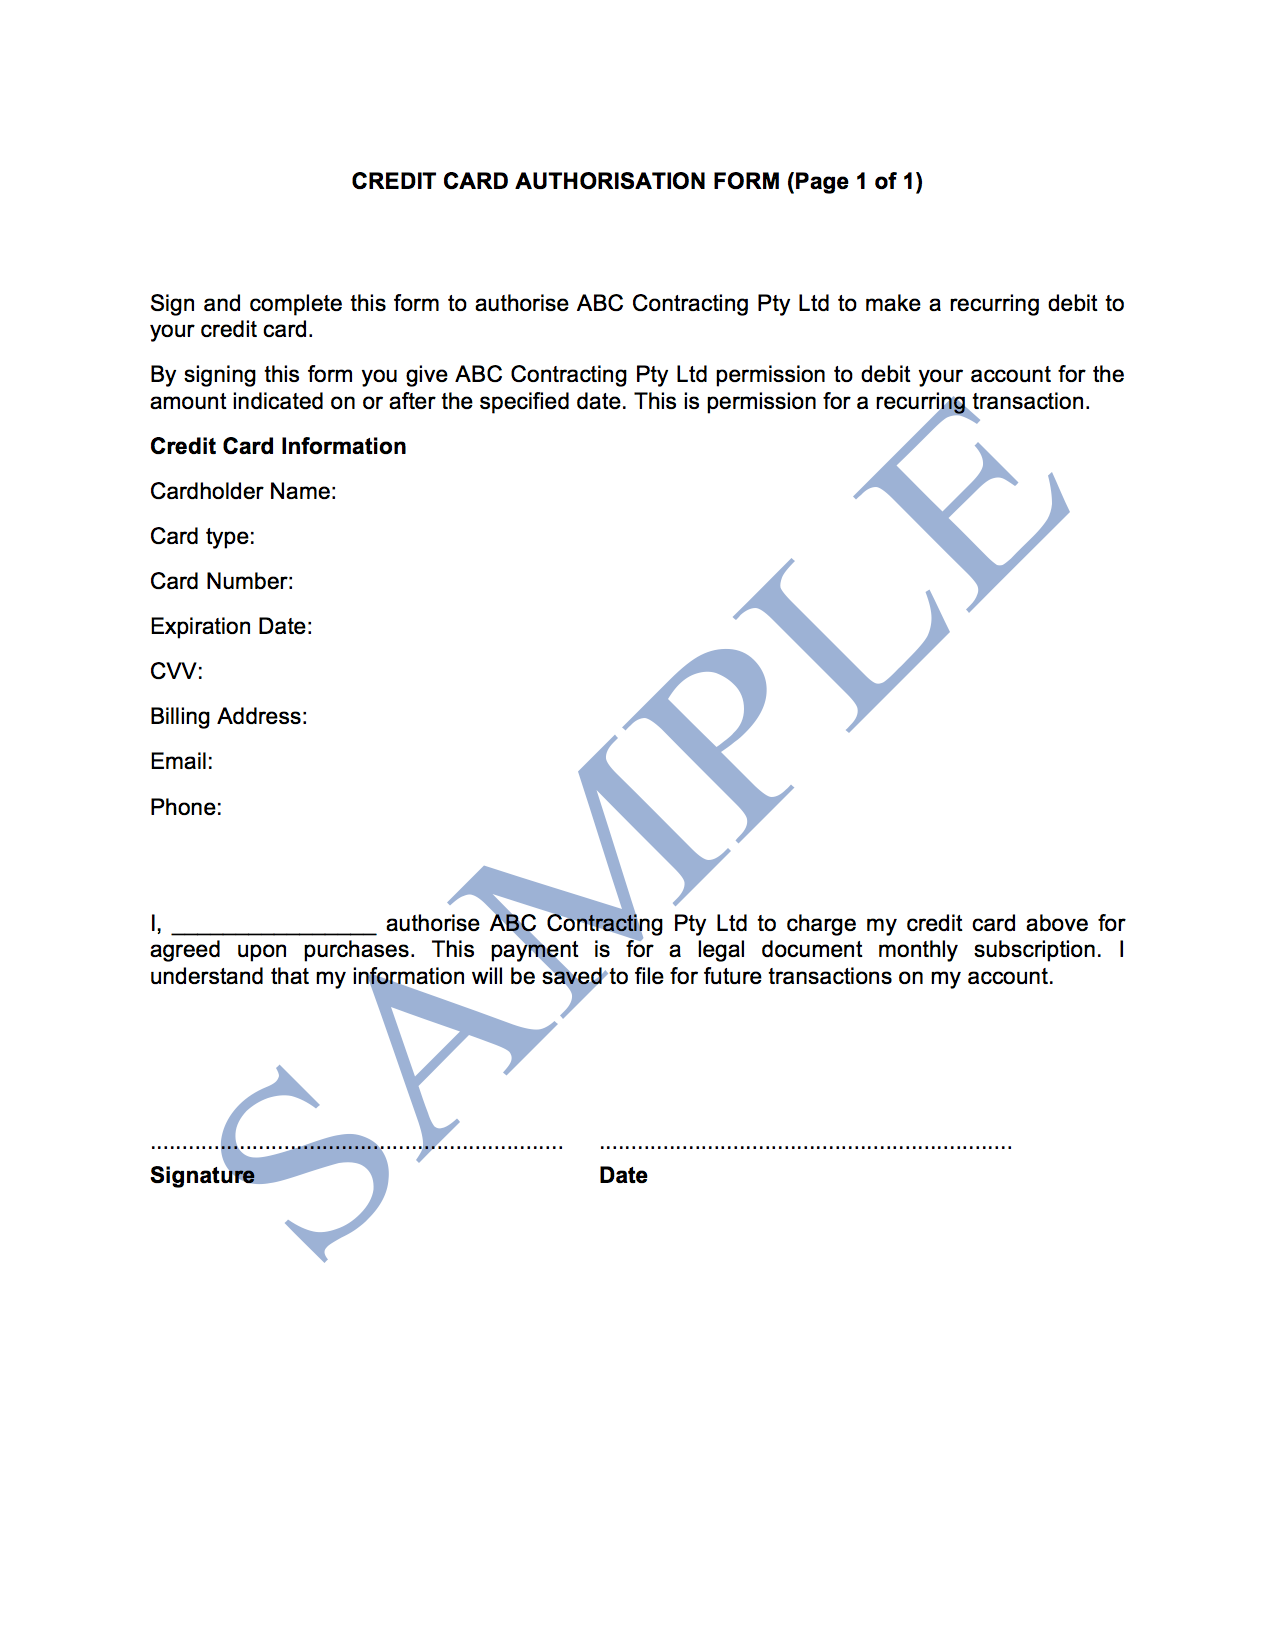 Credit Card Authorisation Form - Free Template | Sample ... on credit card consent form template, credit card authorization form template, credit card approval form template,